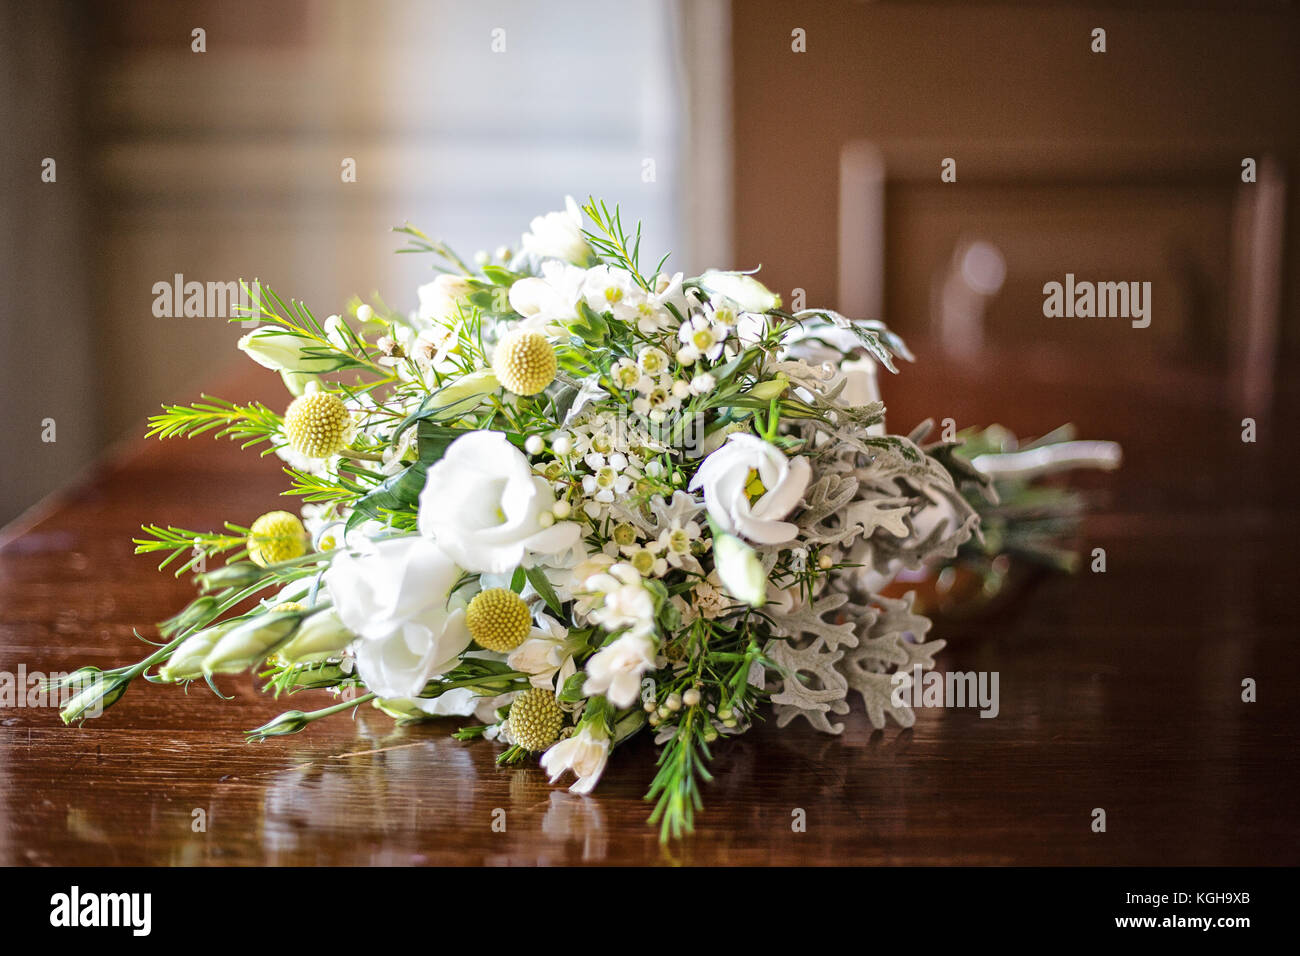 Rustical White And Green Wedding Bouquet Placed On A Wooden Table